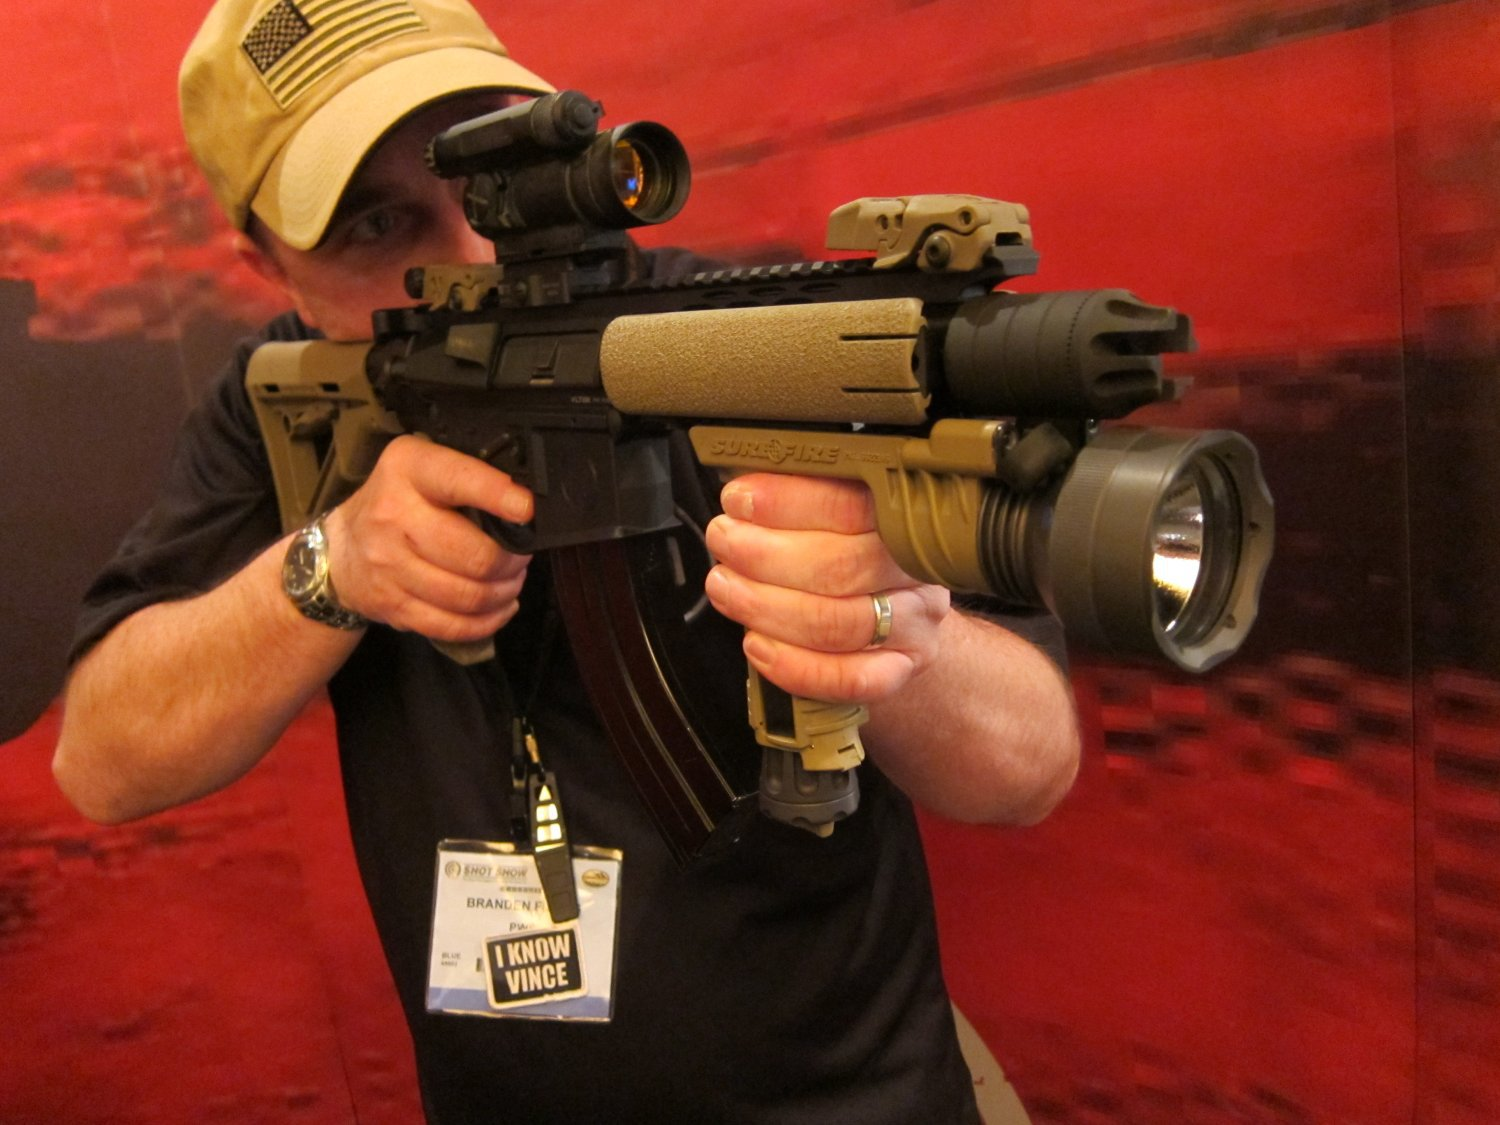 shot show 2010 primary weapons systems pws 762x39mm russian ar sbr 1 <!  :en  >PWS Diablo 7.62x39mm Russian: 7 Barreled Long Stroke Gas Piston/Op Rod AR (AR 15) SBR/Complete Upper Receiver Assembly<!  :  >